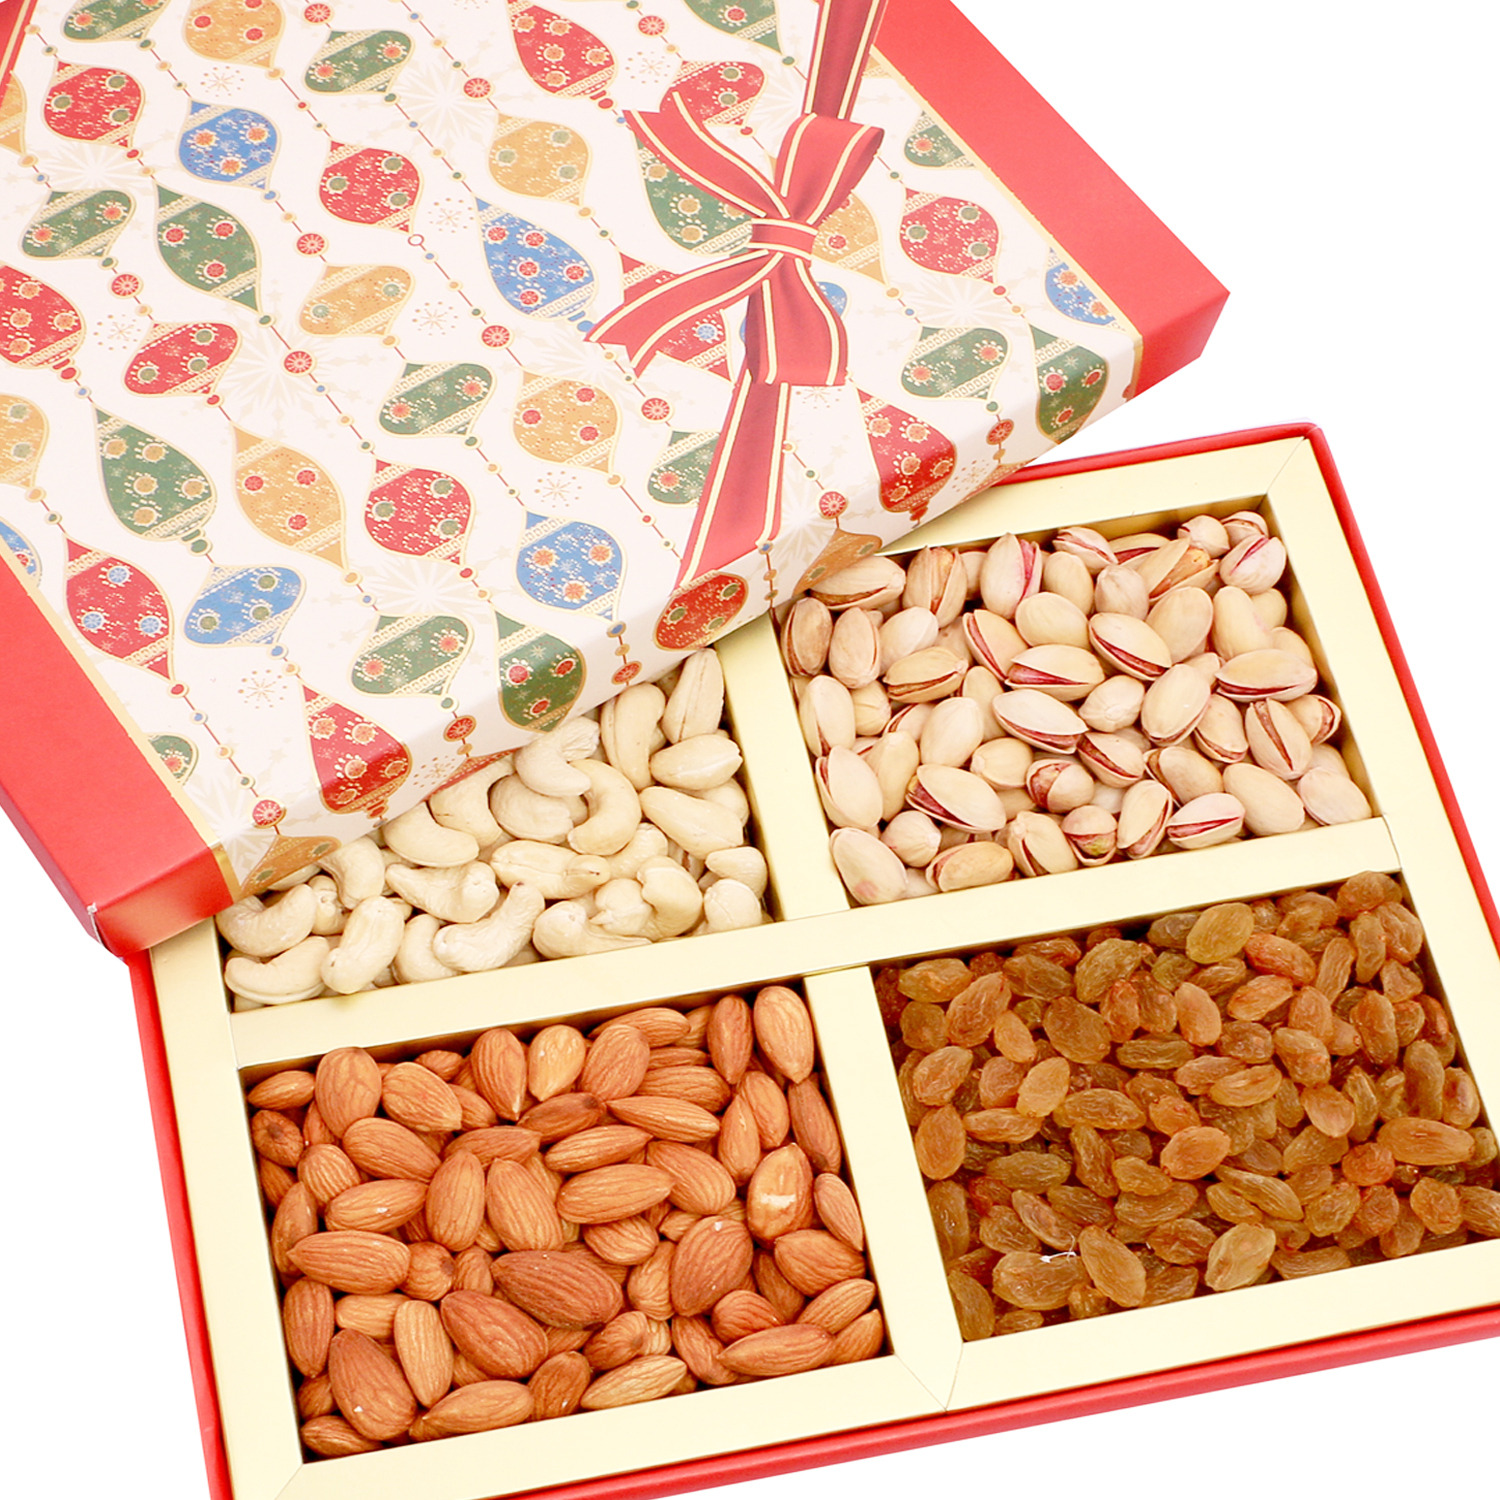 Dryfruits - Red Square 4 Part Dryfruit Box